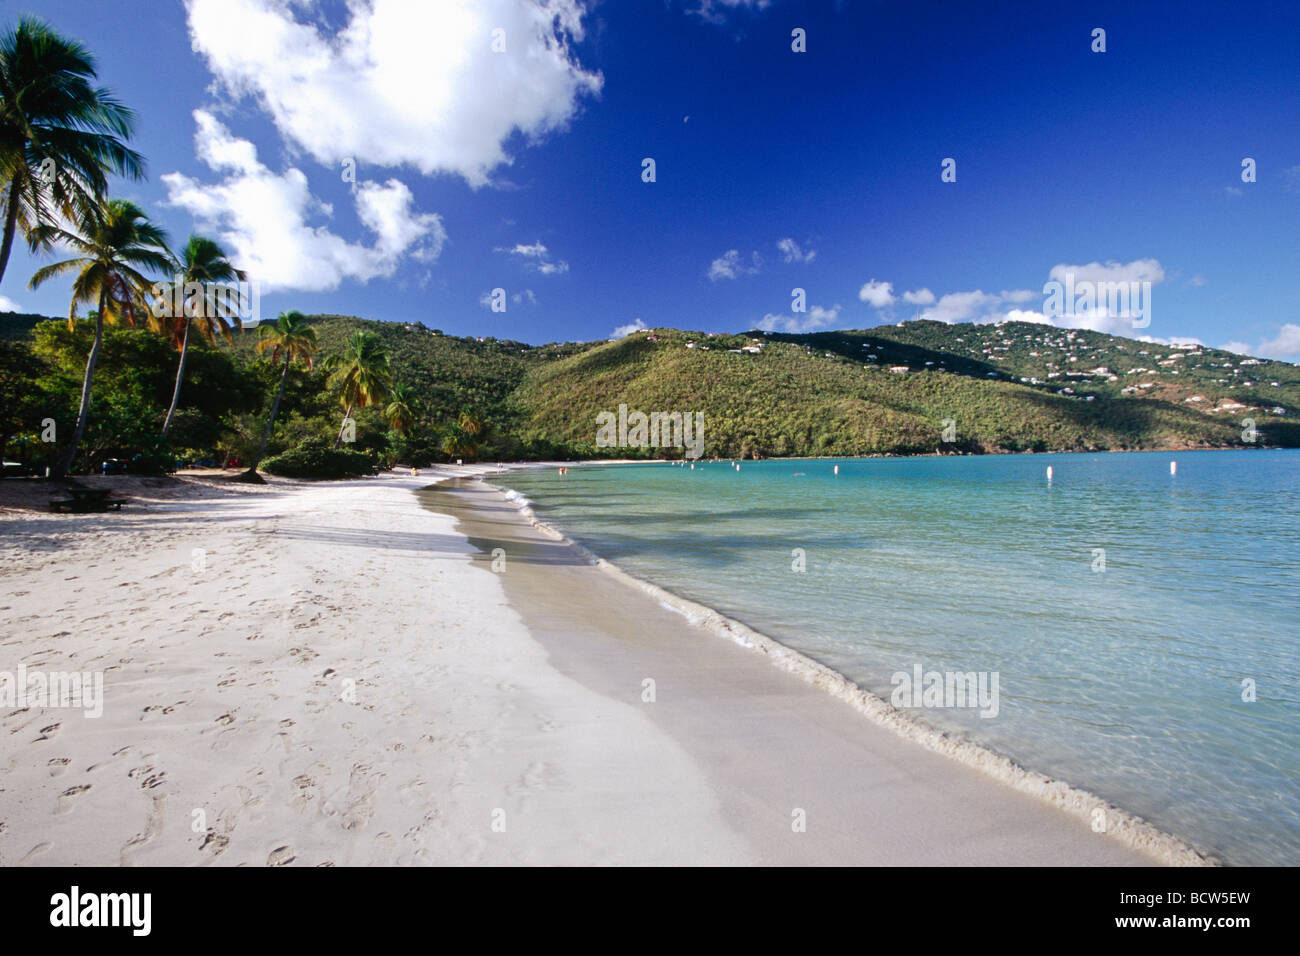 168 Hotels Near Magens Bay in St Thomas from